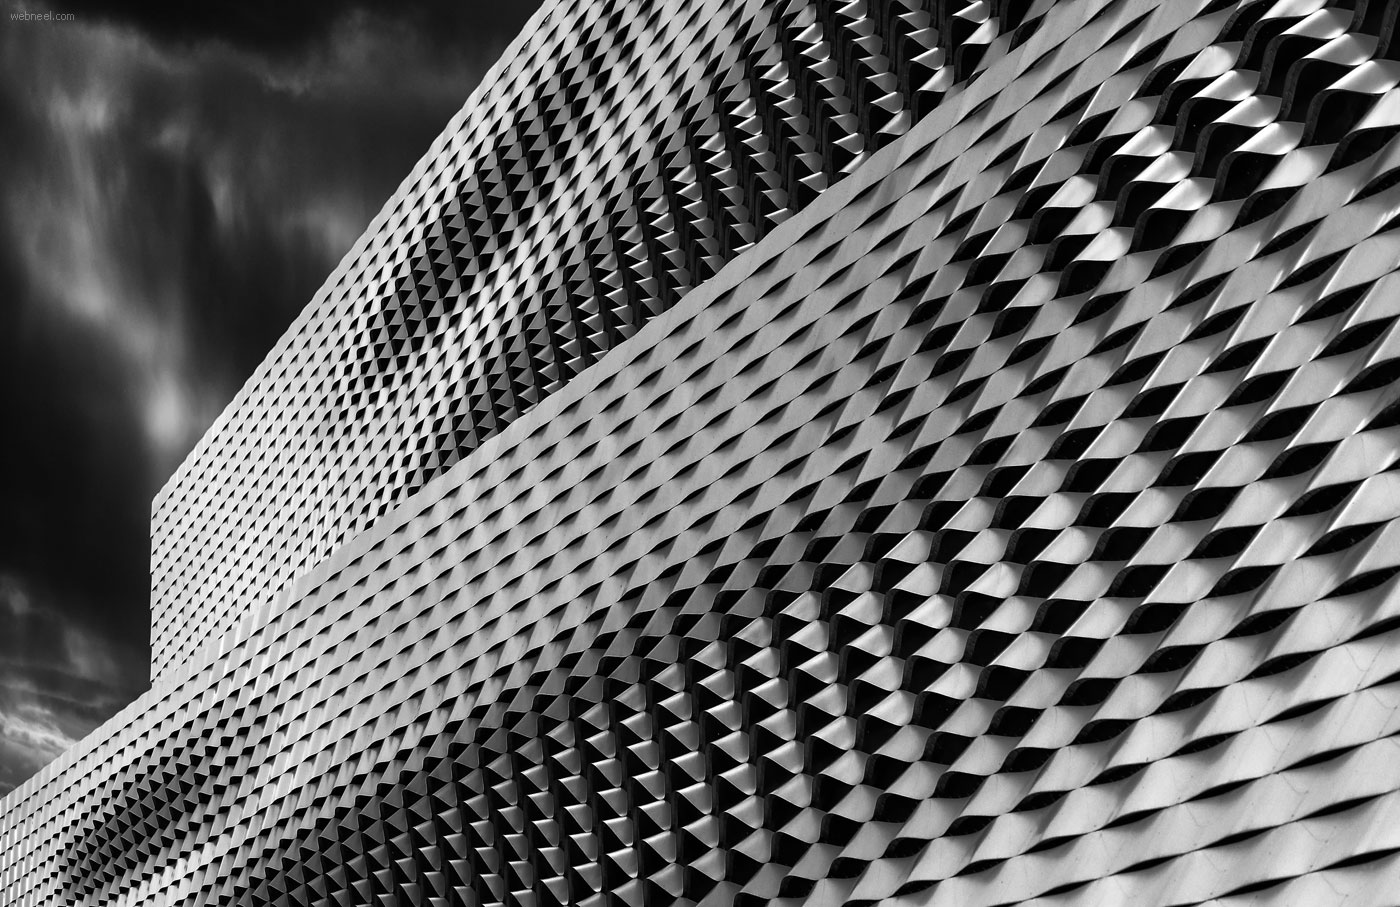 abstract photography by hanswolfganghawerkamp